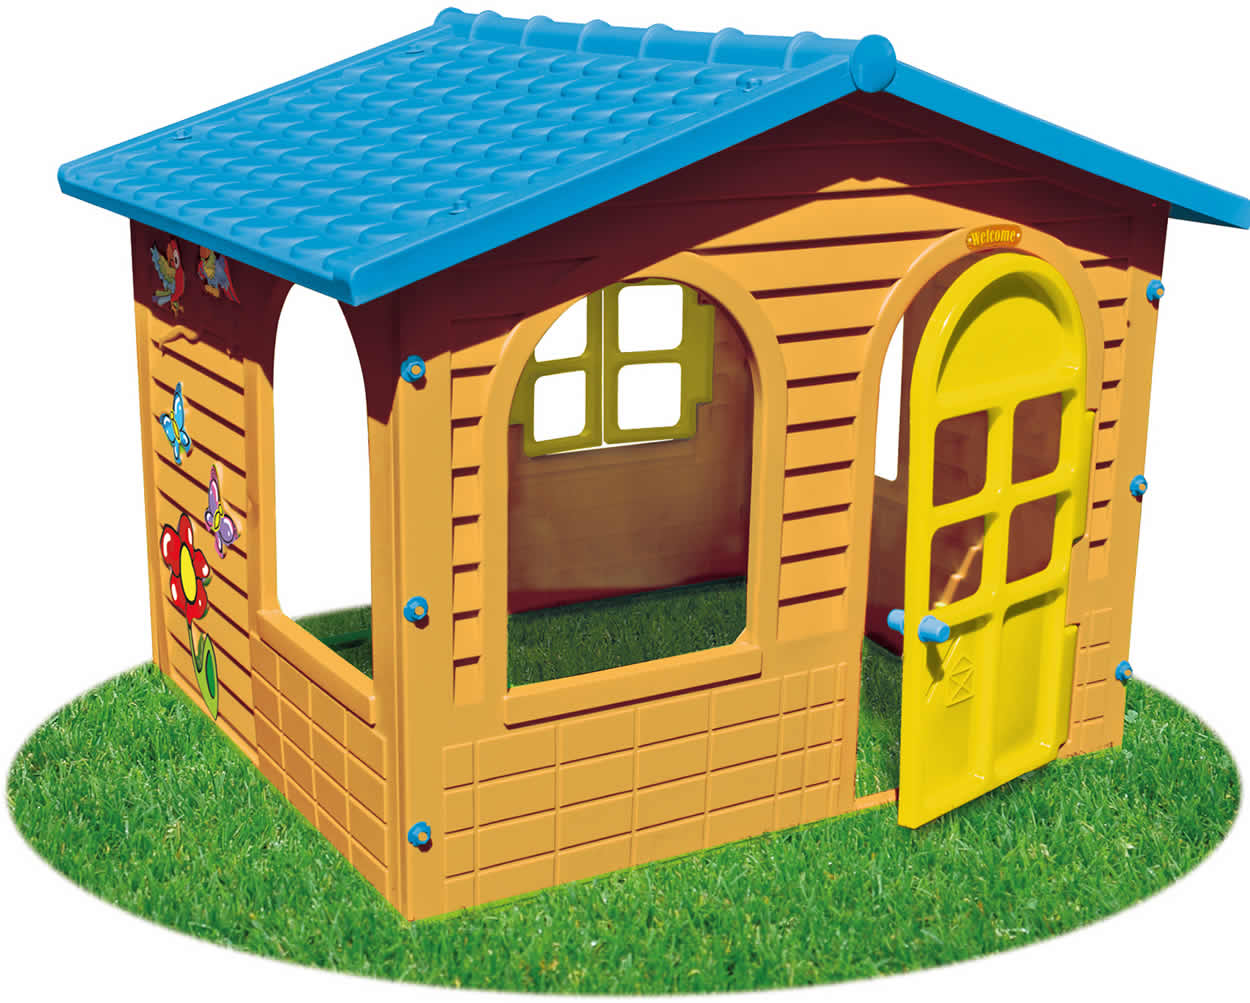 mochtoys spielhaus kinderspielhaus gartenhaus kunststoff 12m ebay. Black Bedroom Furniture Sets. Home Design Ideas